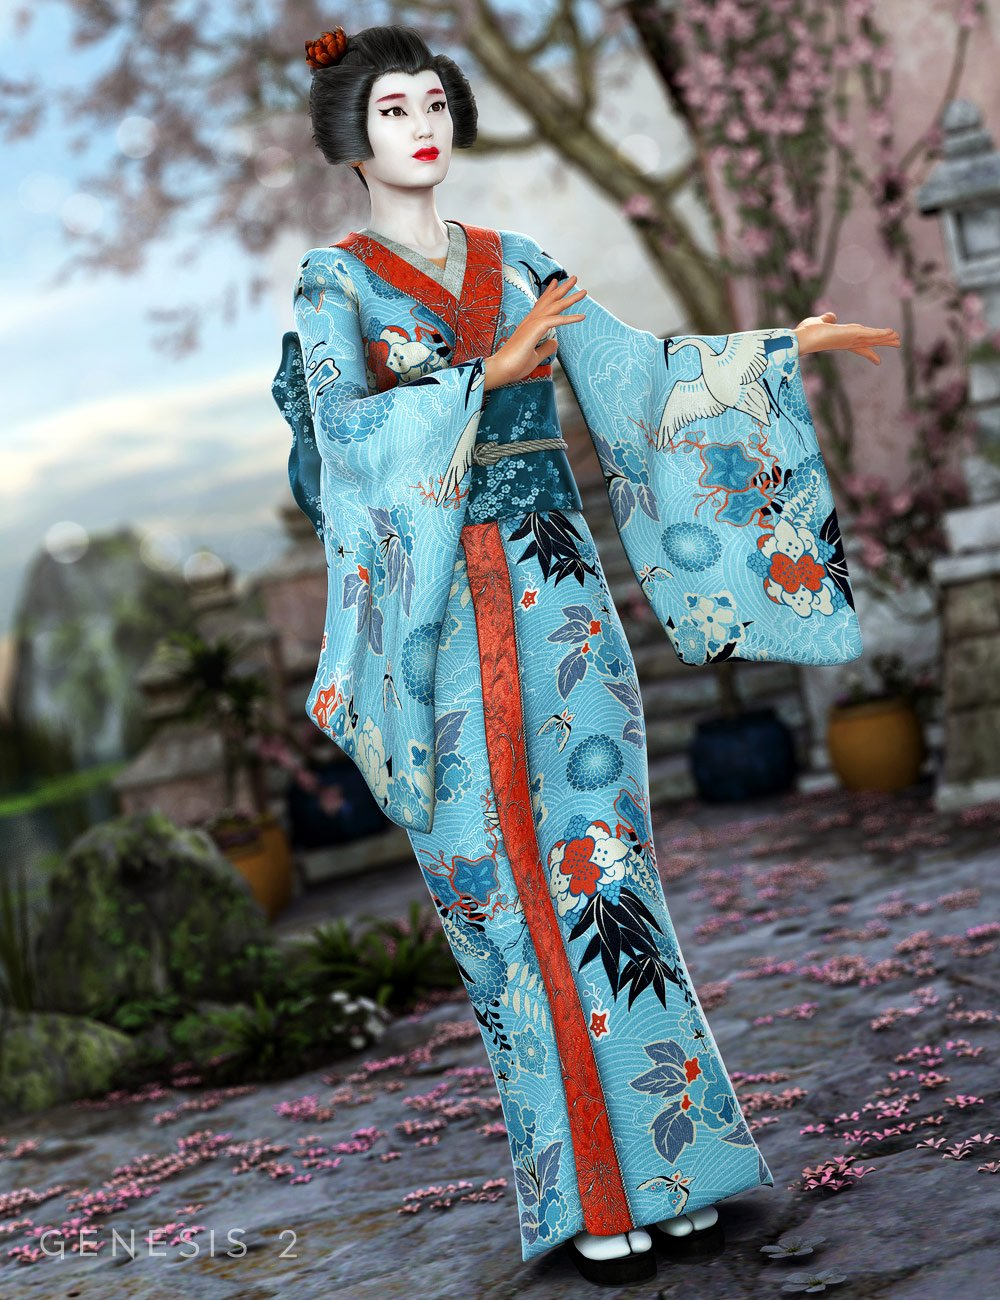 Peony Kimono for Genesis 2 Female(s) by: MadaSarsa, 3D Models by Daz 3D